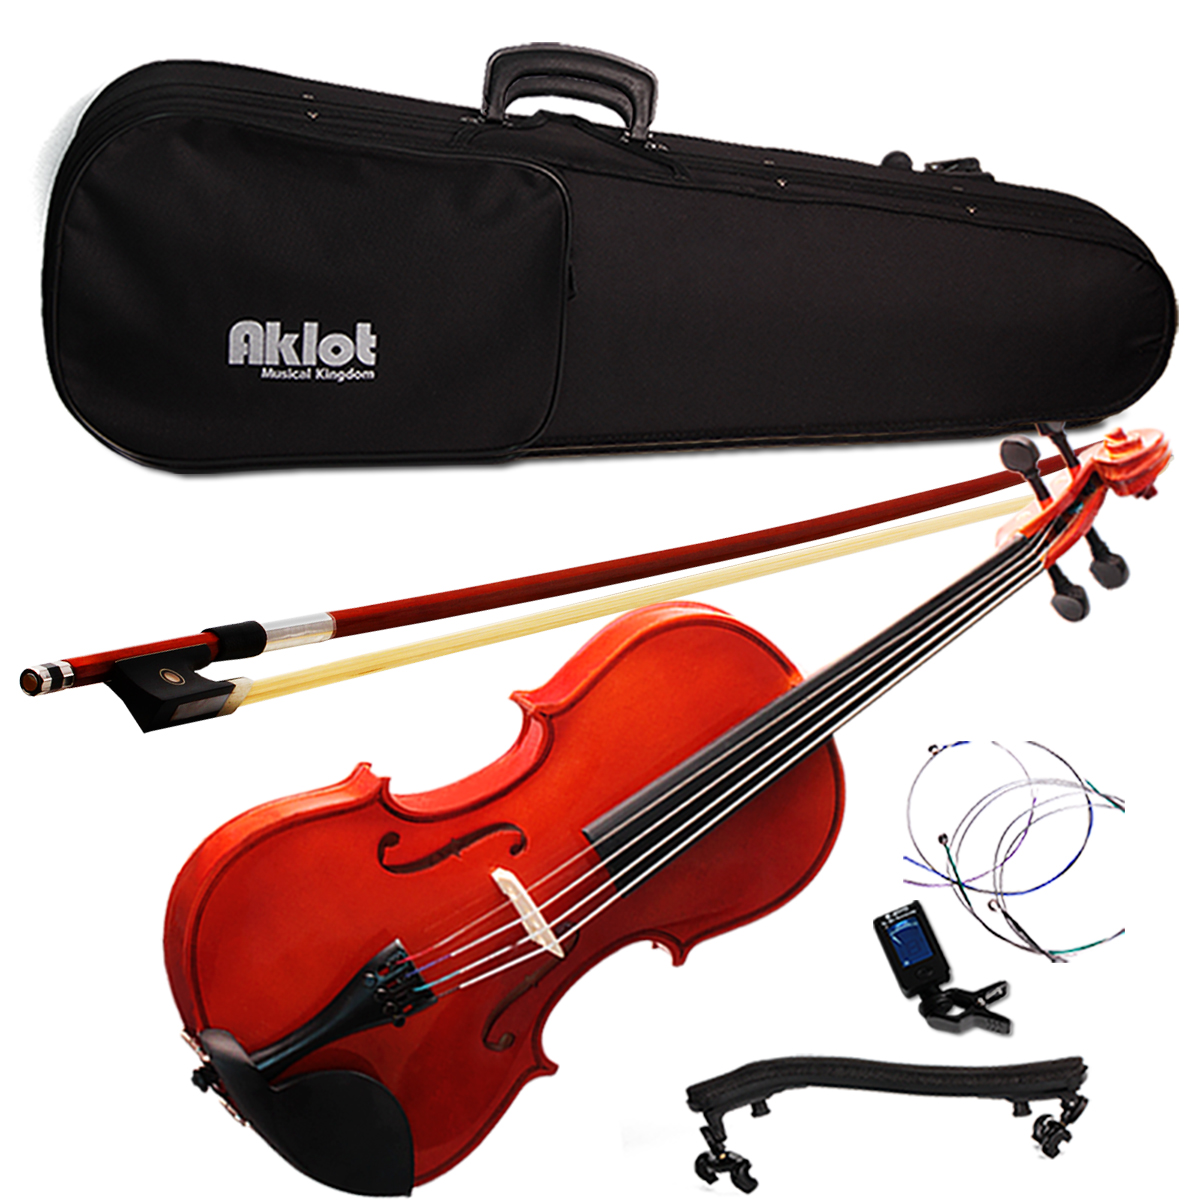 Violin 4/4 Full Size Natural Acoustic Fiddle with Case Bow Shoulder Rest Tuner Violin Rosin Wood Musical Instruments